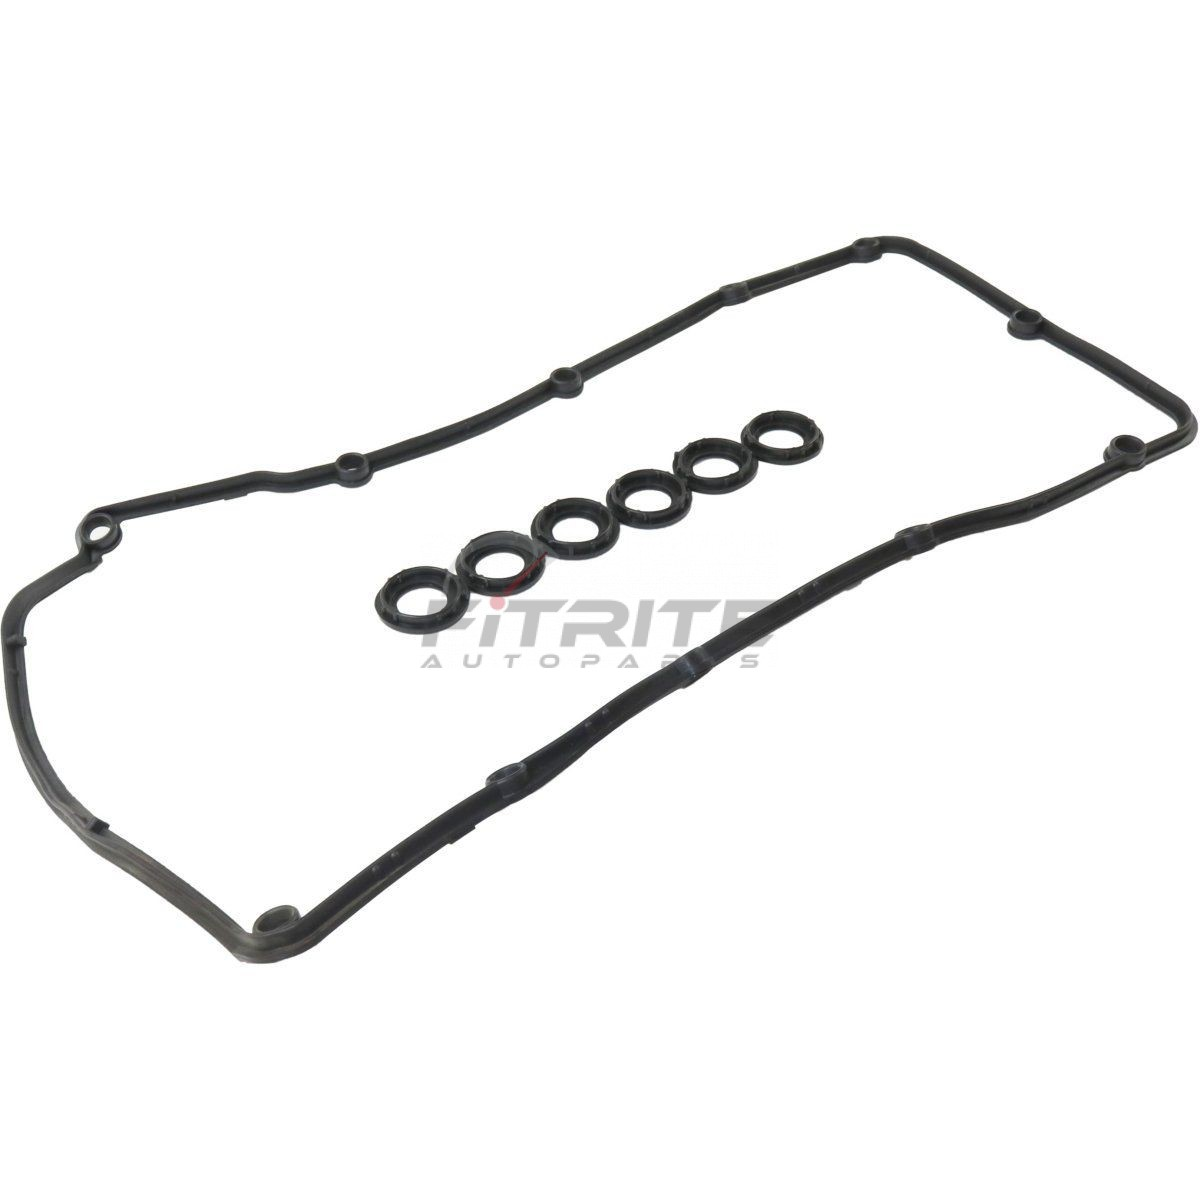 NEW VALVE COVER GASKET FOR 2004-09 AUDI TT QUATTRO